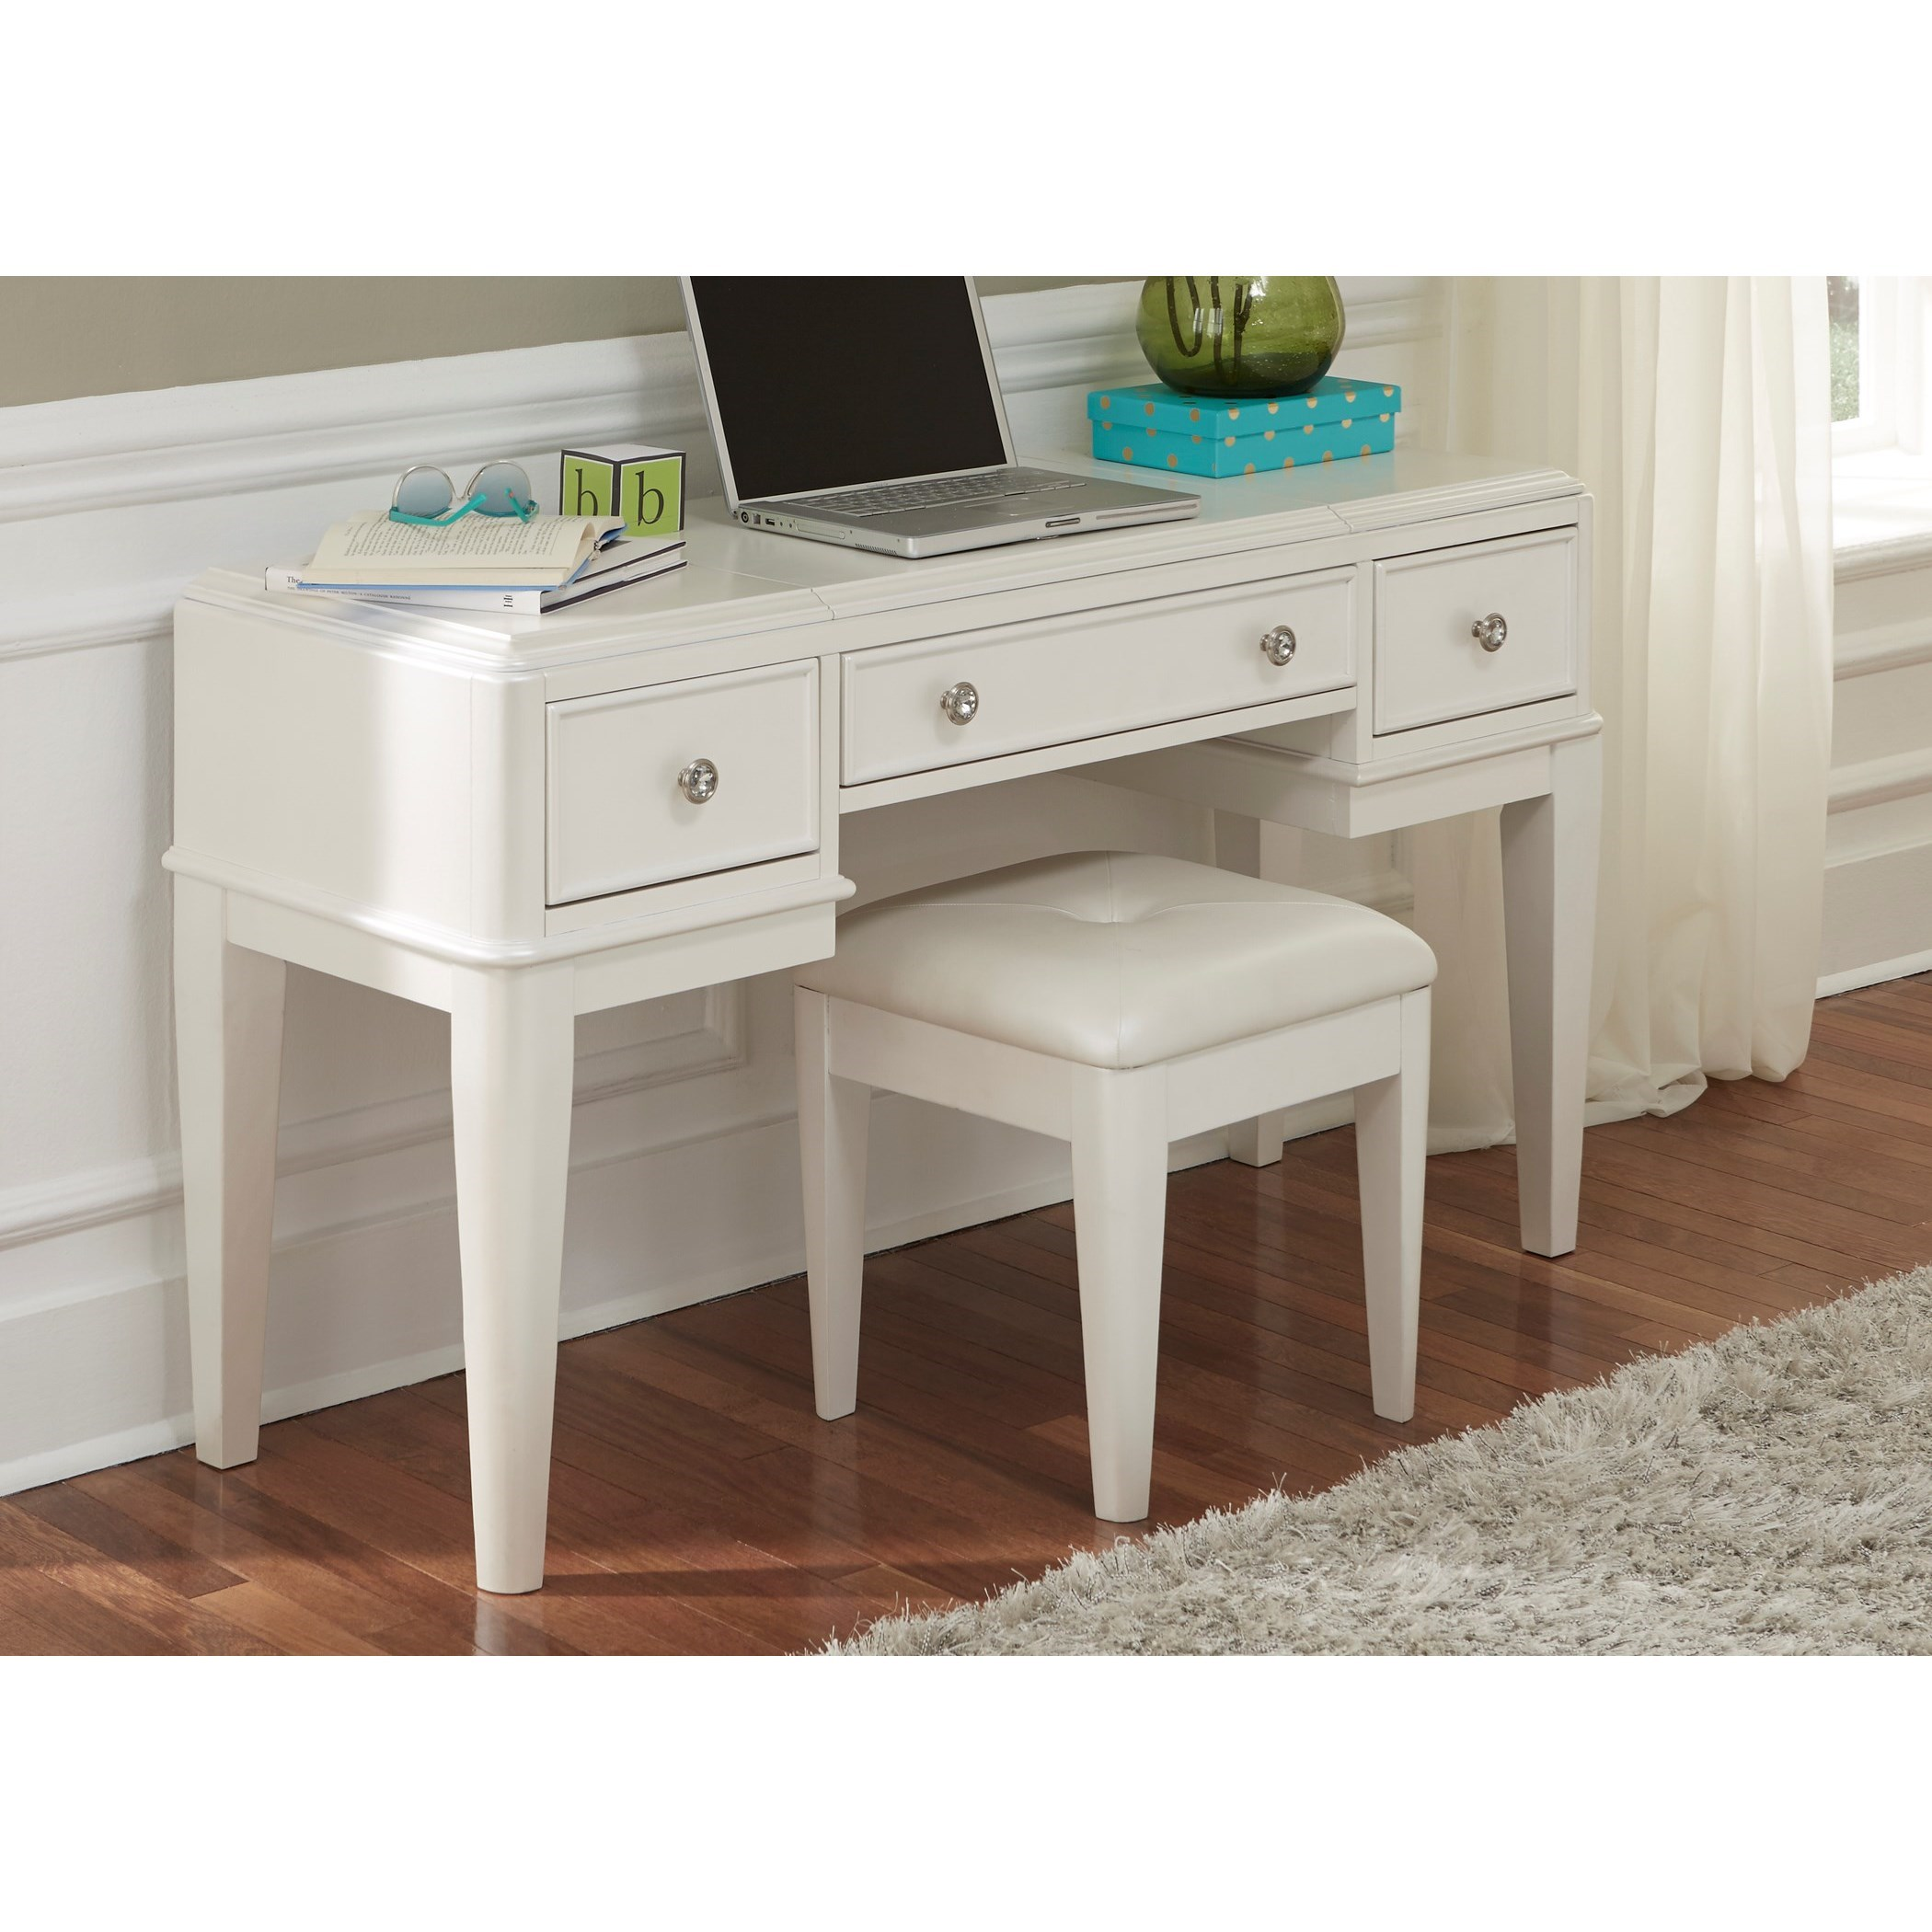 Stardust Vanity and Bench by Libby at Walker's Furniture